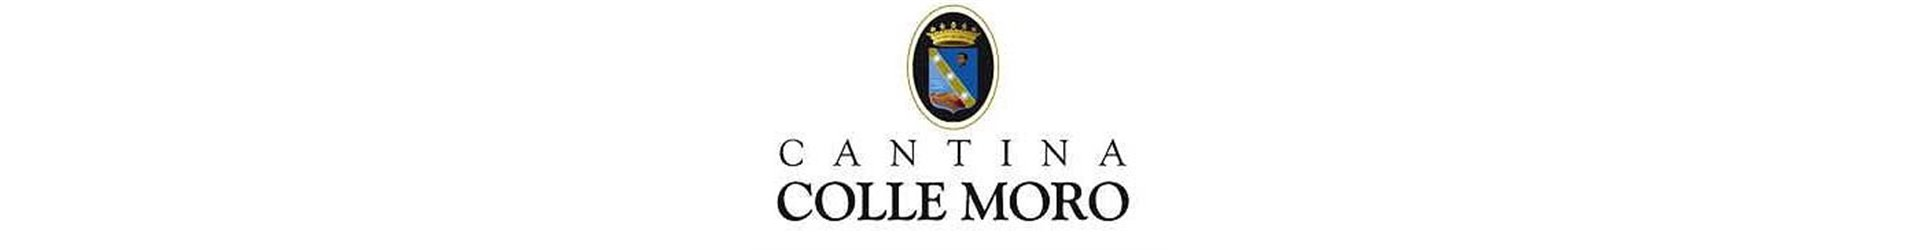 Cantine Colle Moro